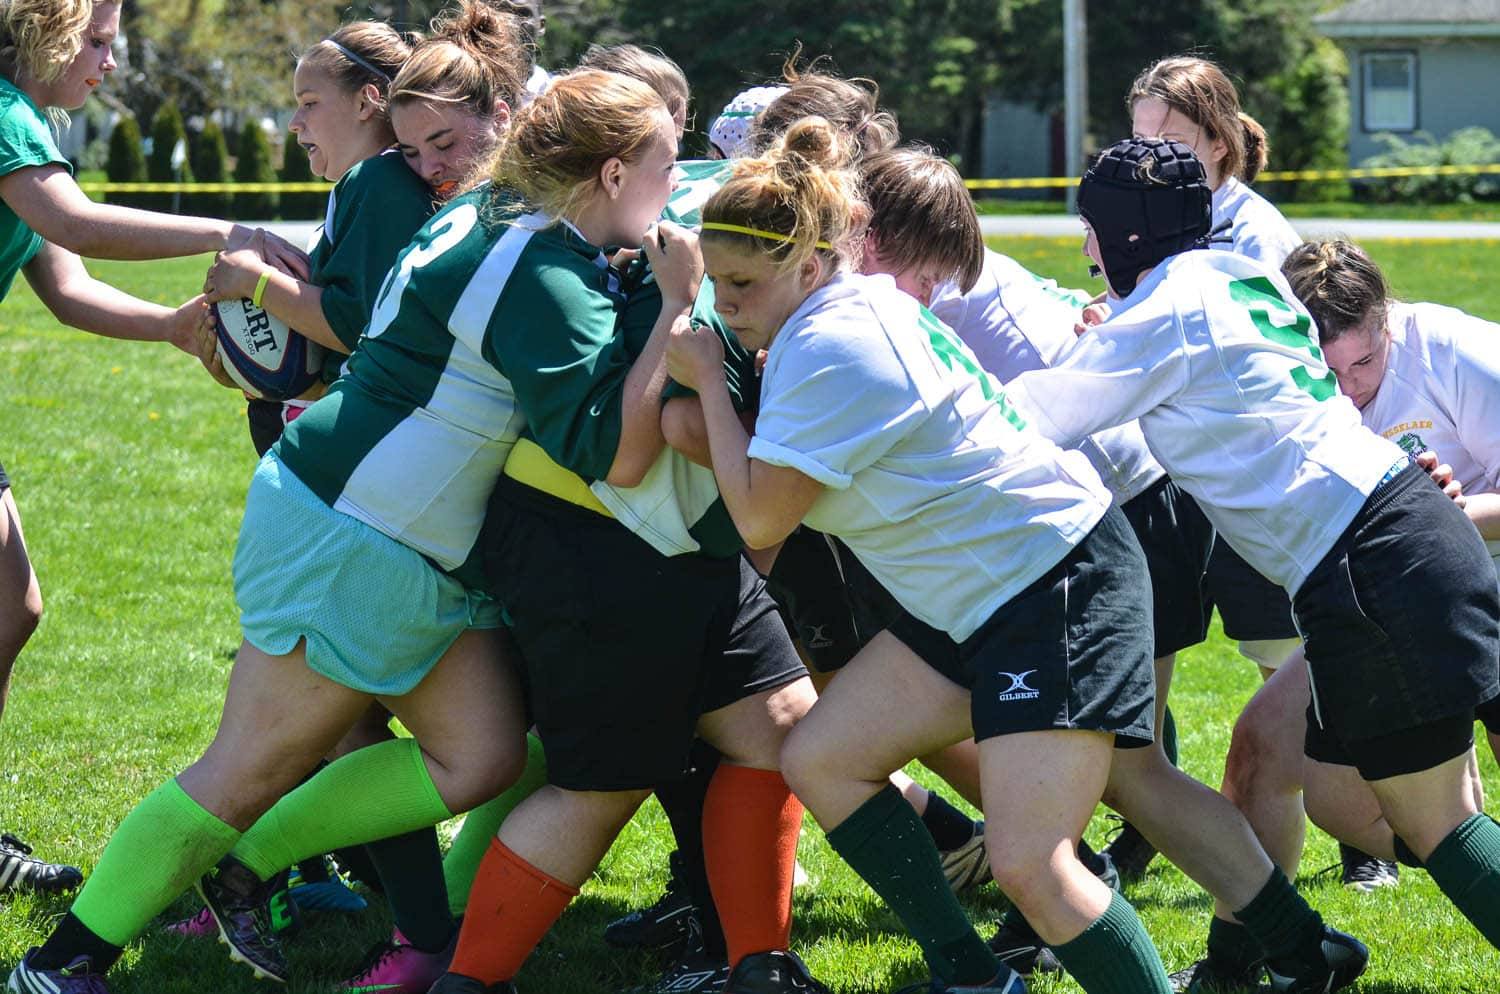 Rough and Rugged, Rugby is an Emerging Sport in the USA